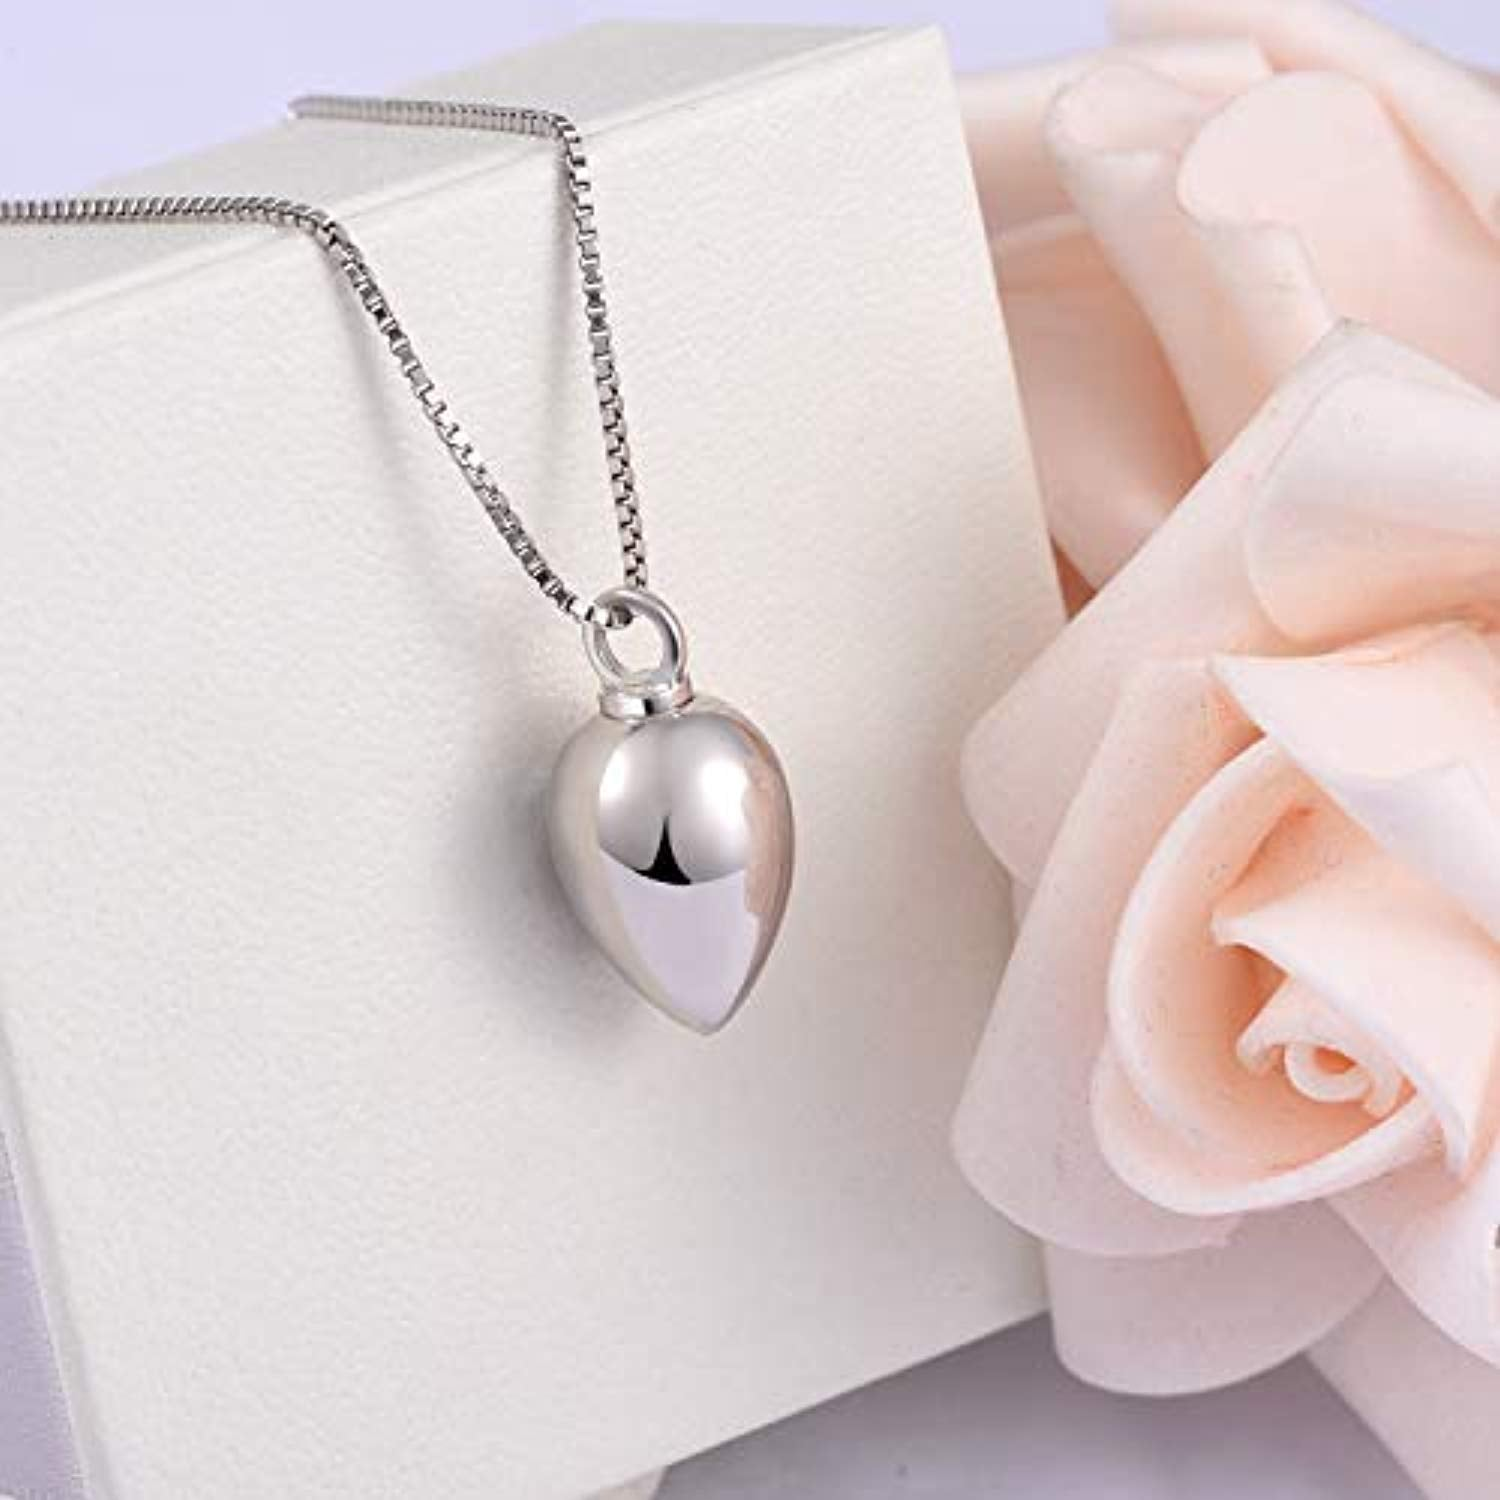 S925 Sterling Silver Keepsake Urn Necklace - Always in My Heart Memorial Teardrop Cremation Jewelry for Ashes